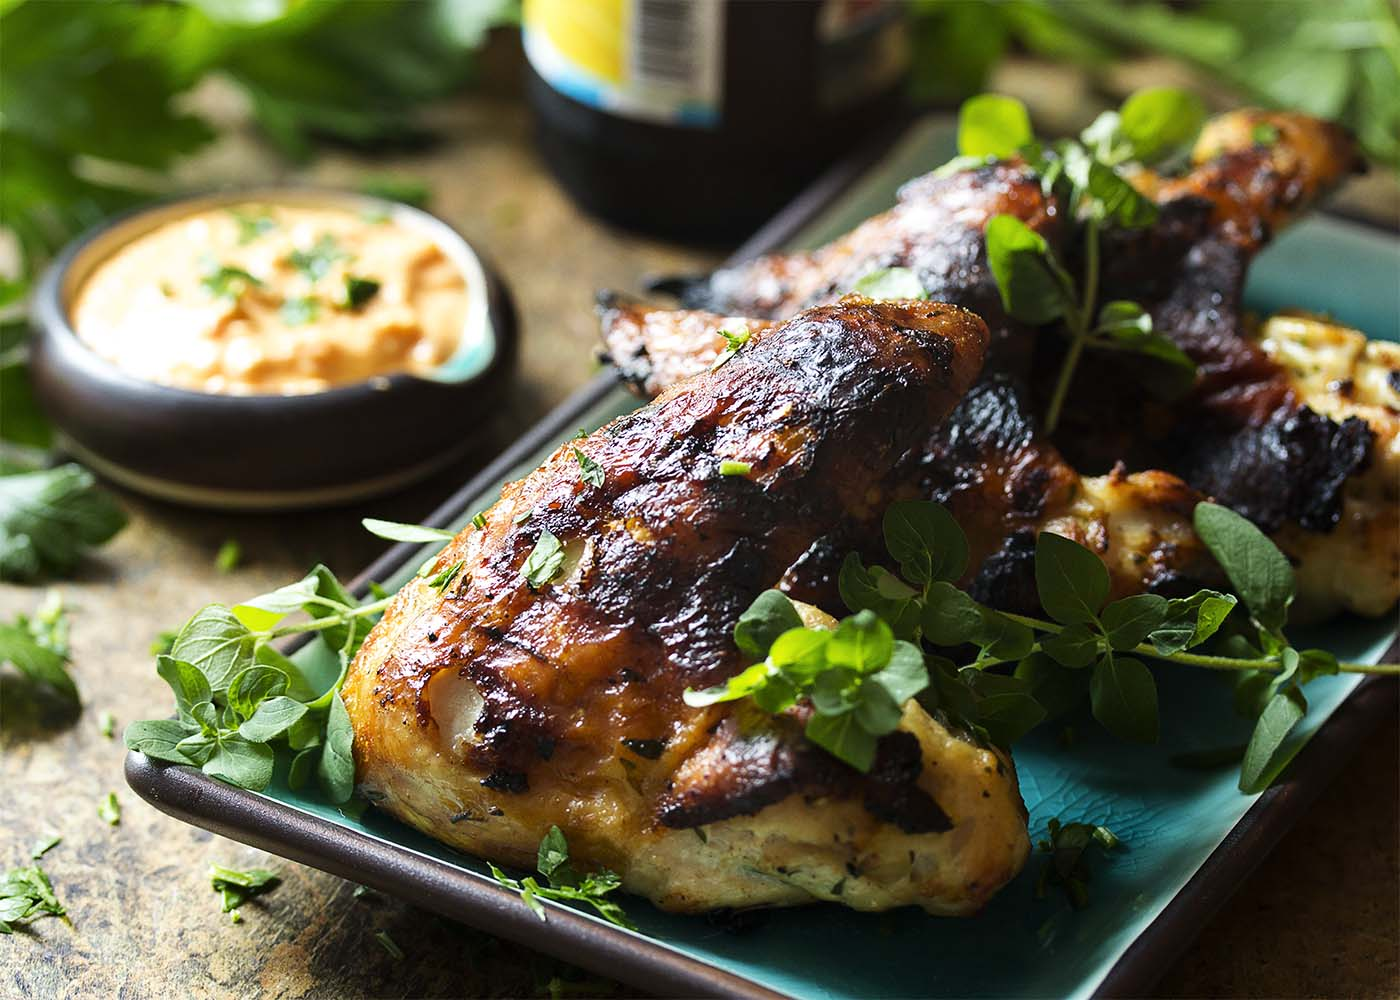 Yogurt marinated chicken wings are so flavorful, tender and juicy which makes these grilled Greek wings a fun and easy party food! Great by themselves or with a dipping sauce, like roasted pepper feta dip or tzatziki sauce.   justalittlebitofbacon.com